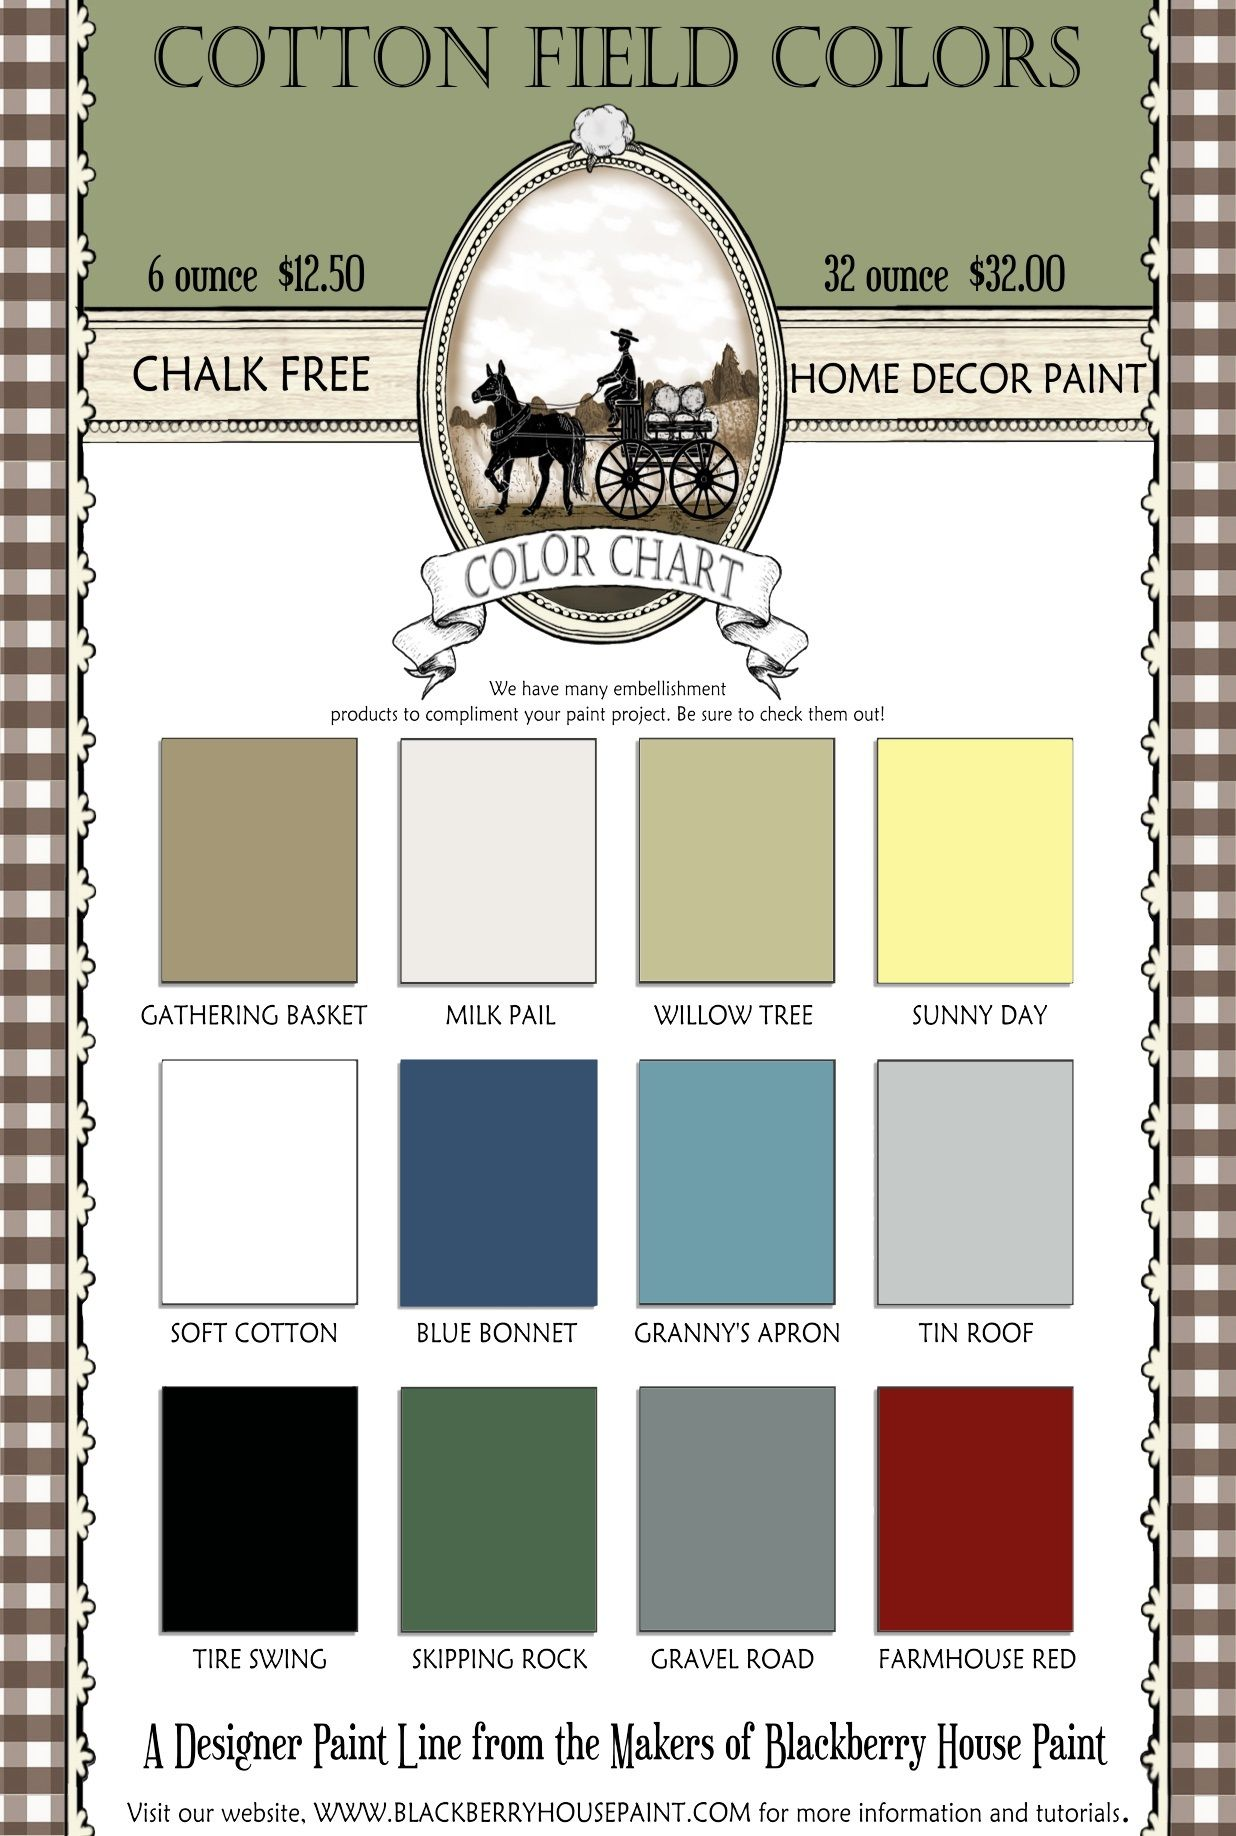 Cotton Field Colors Is A New 12 Color Paint Line From Blackberry House Paint Cfc Like Bhp Is A Water Based Acr Paint Brands House Painting Paint Color Chart